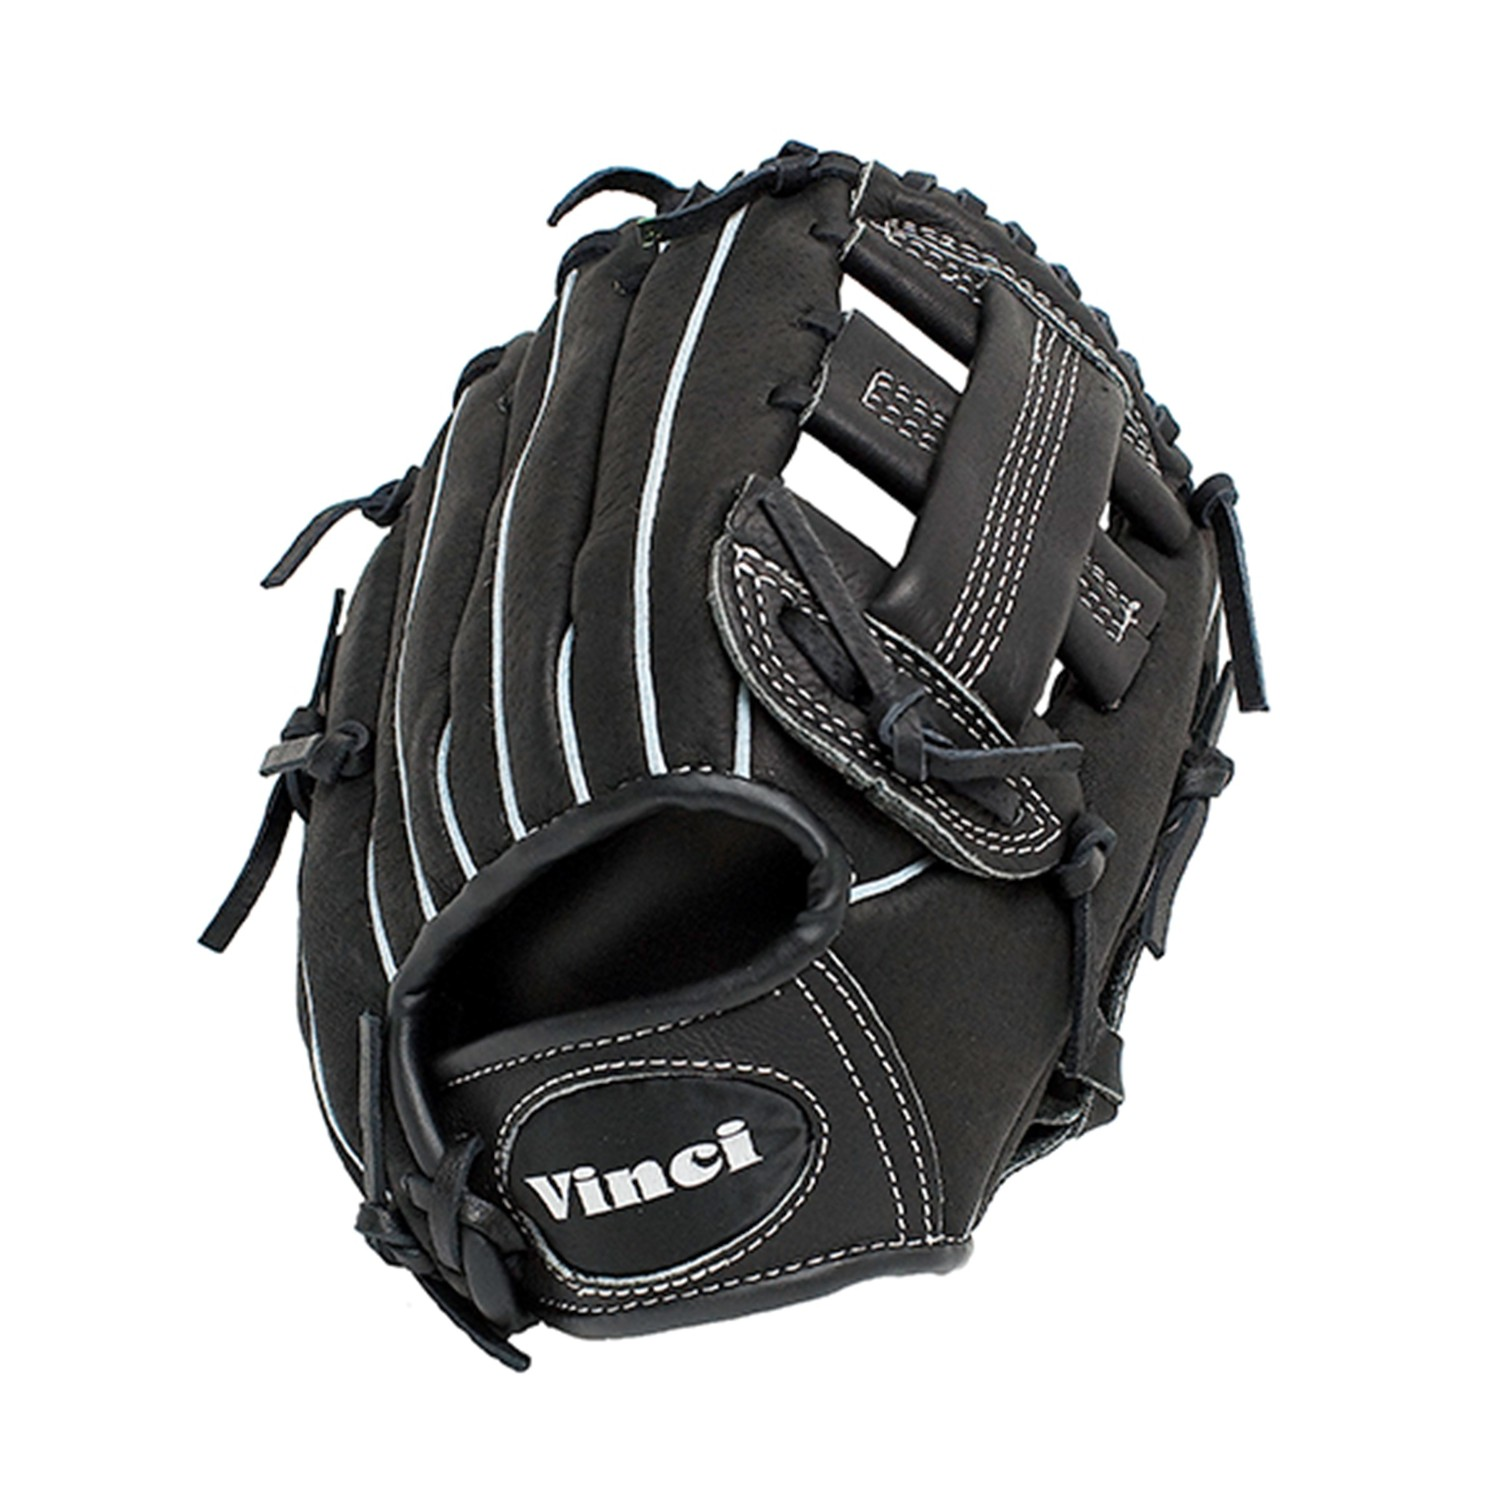 Vinci BRV 1961 Youth Baseball Glove